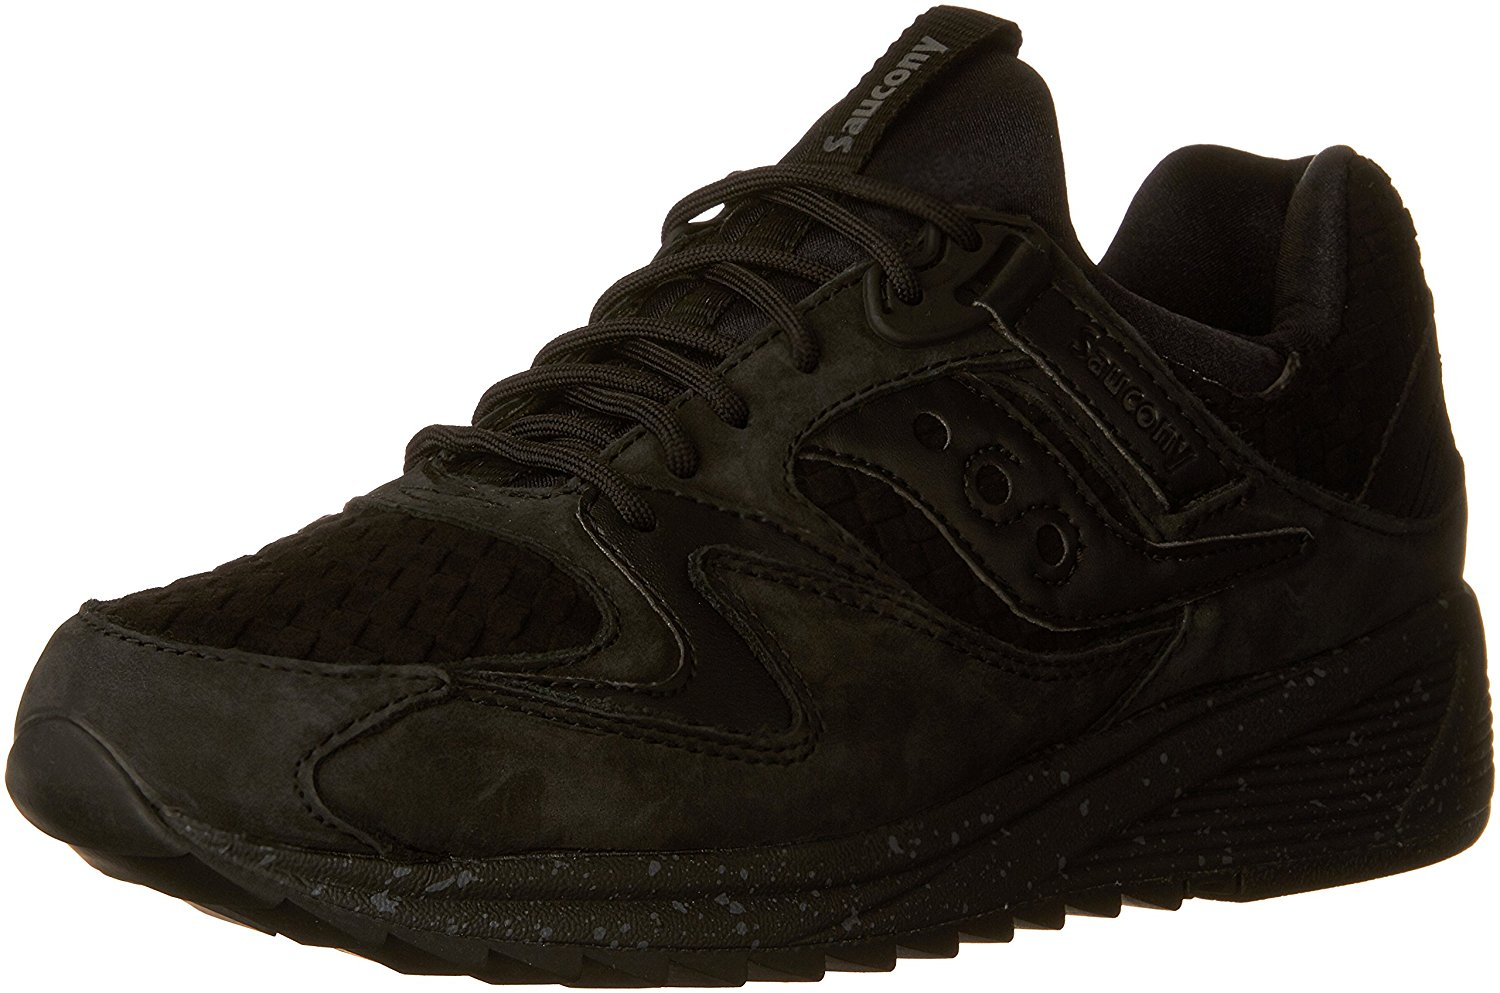 Saucony Men's Grid 8500 Basketweave Sneaker Black Size 6.5